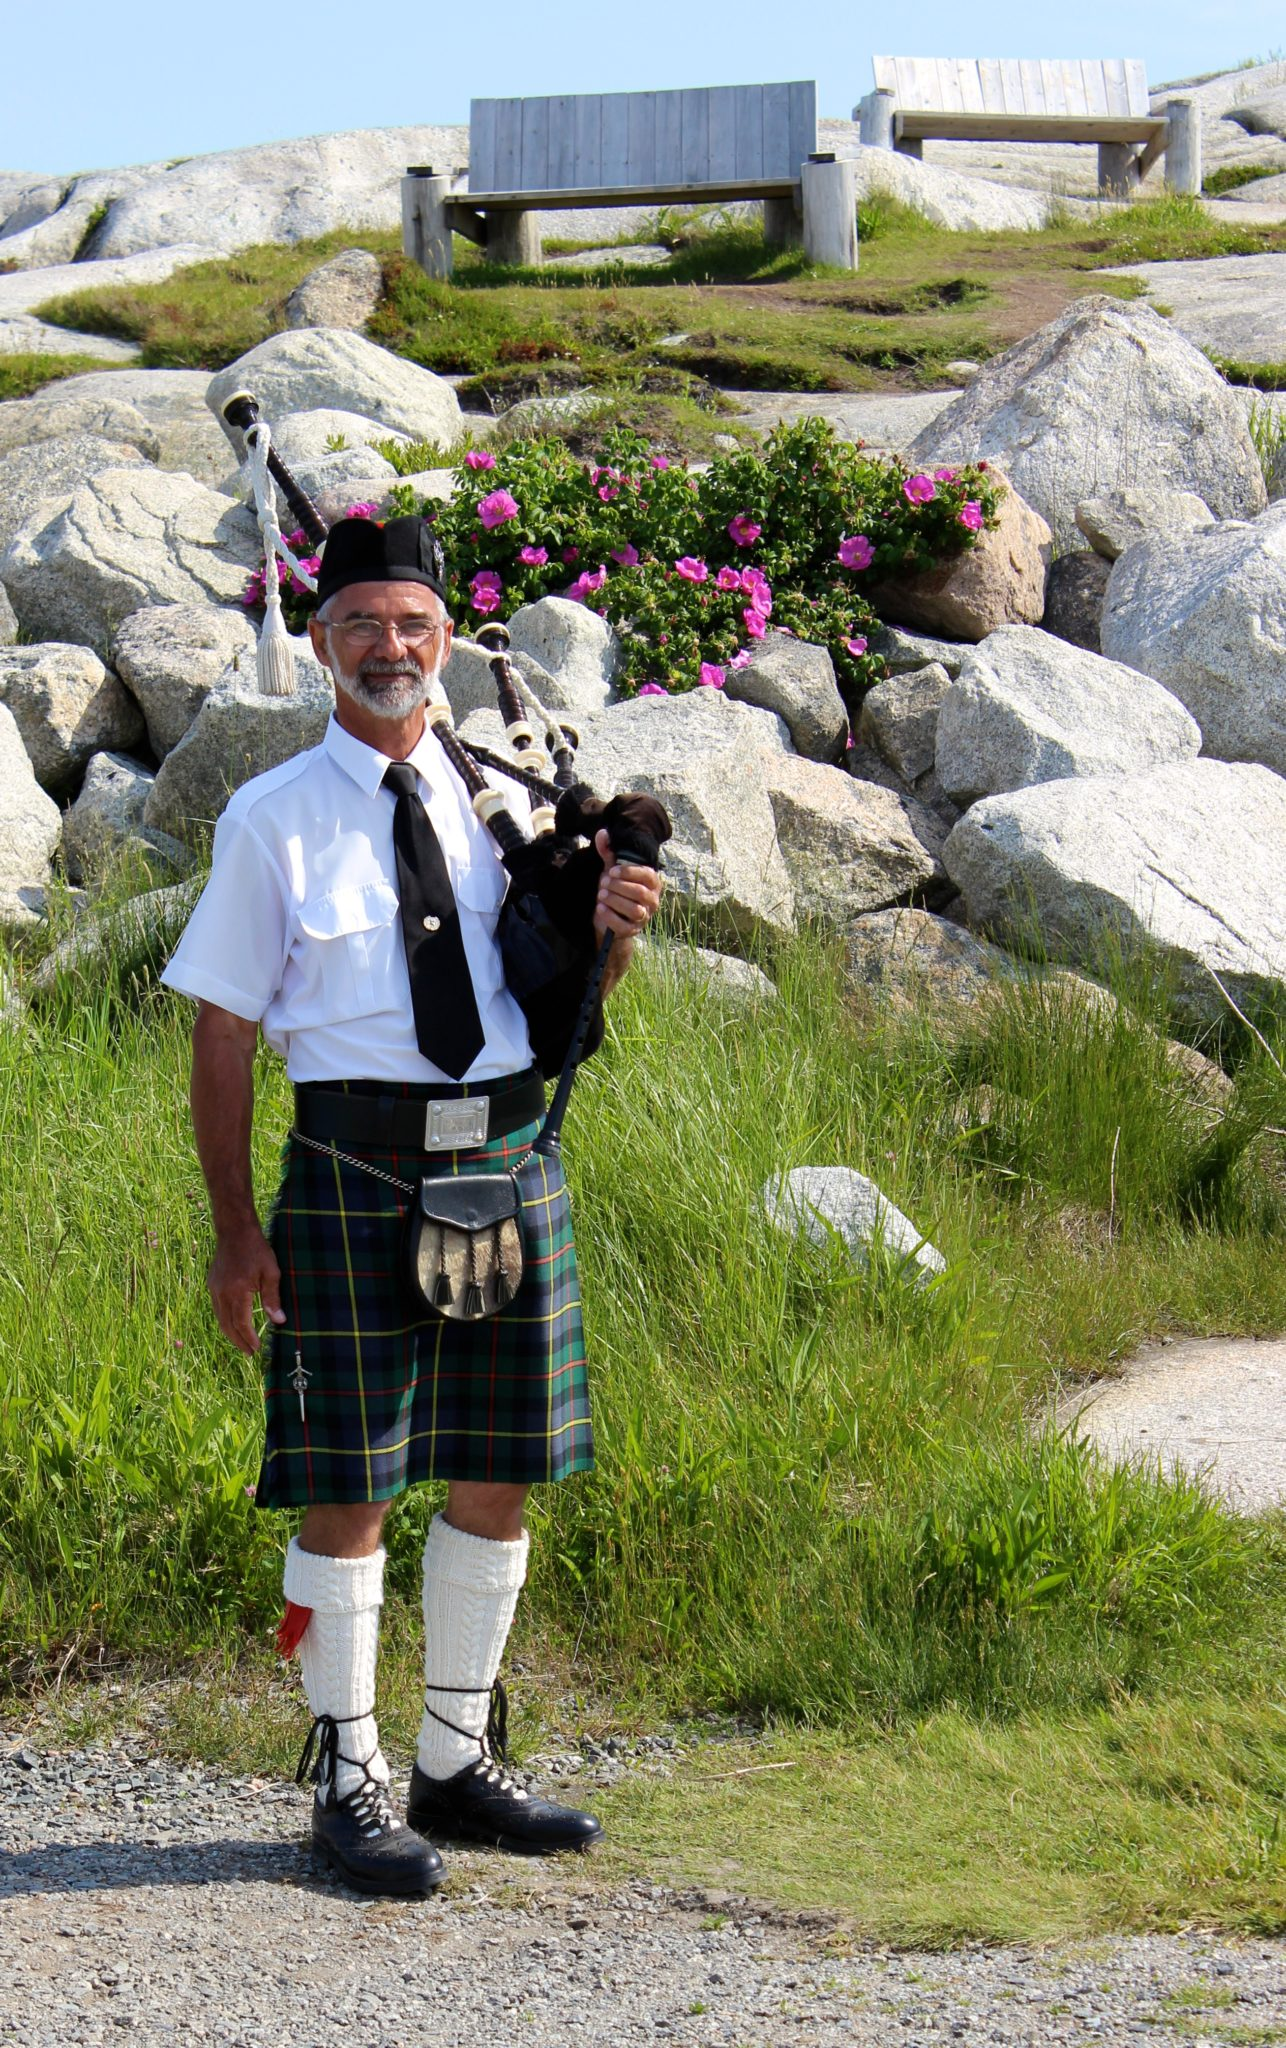 The Bag pipes guy at Peggy's Cove.